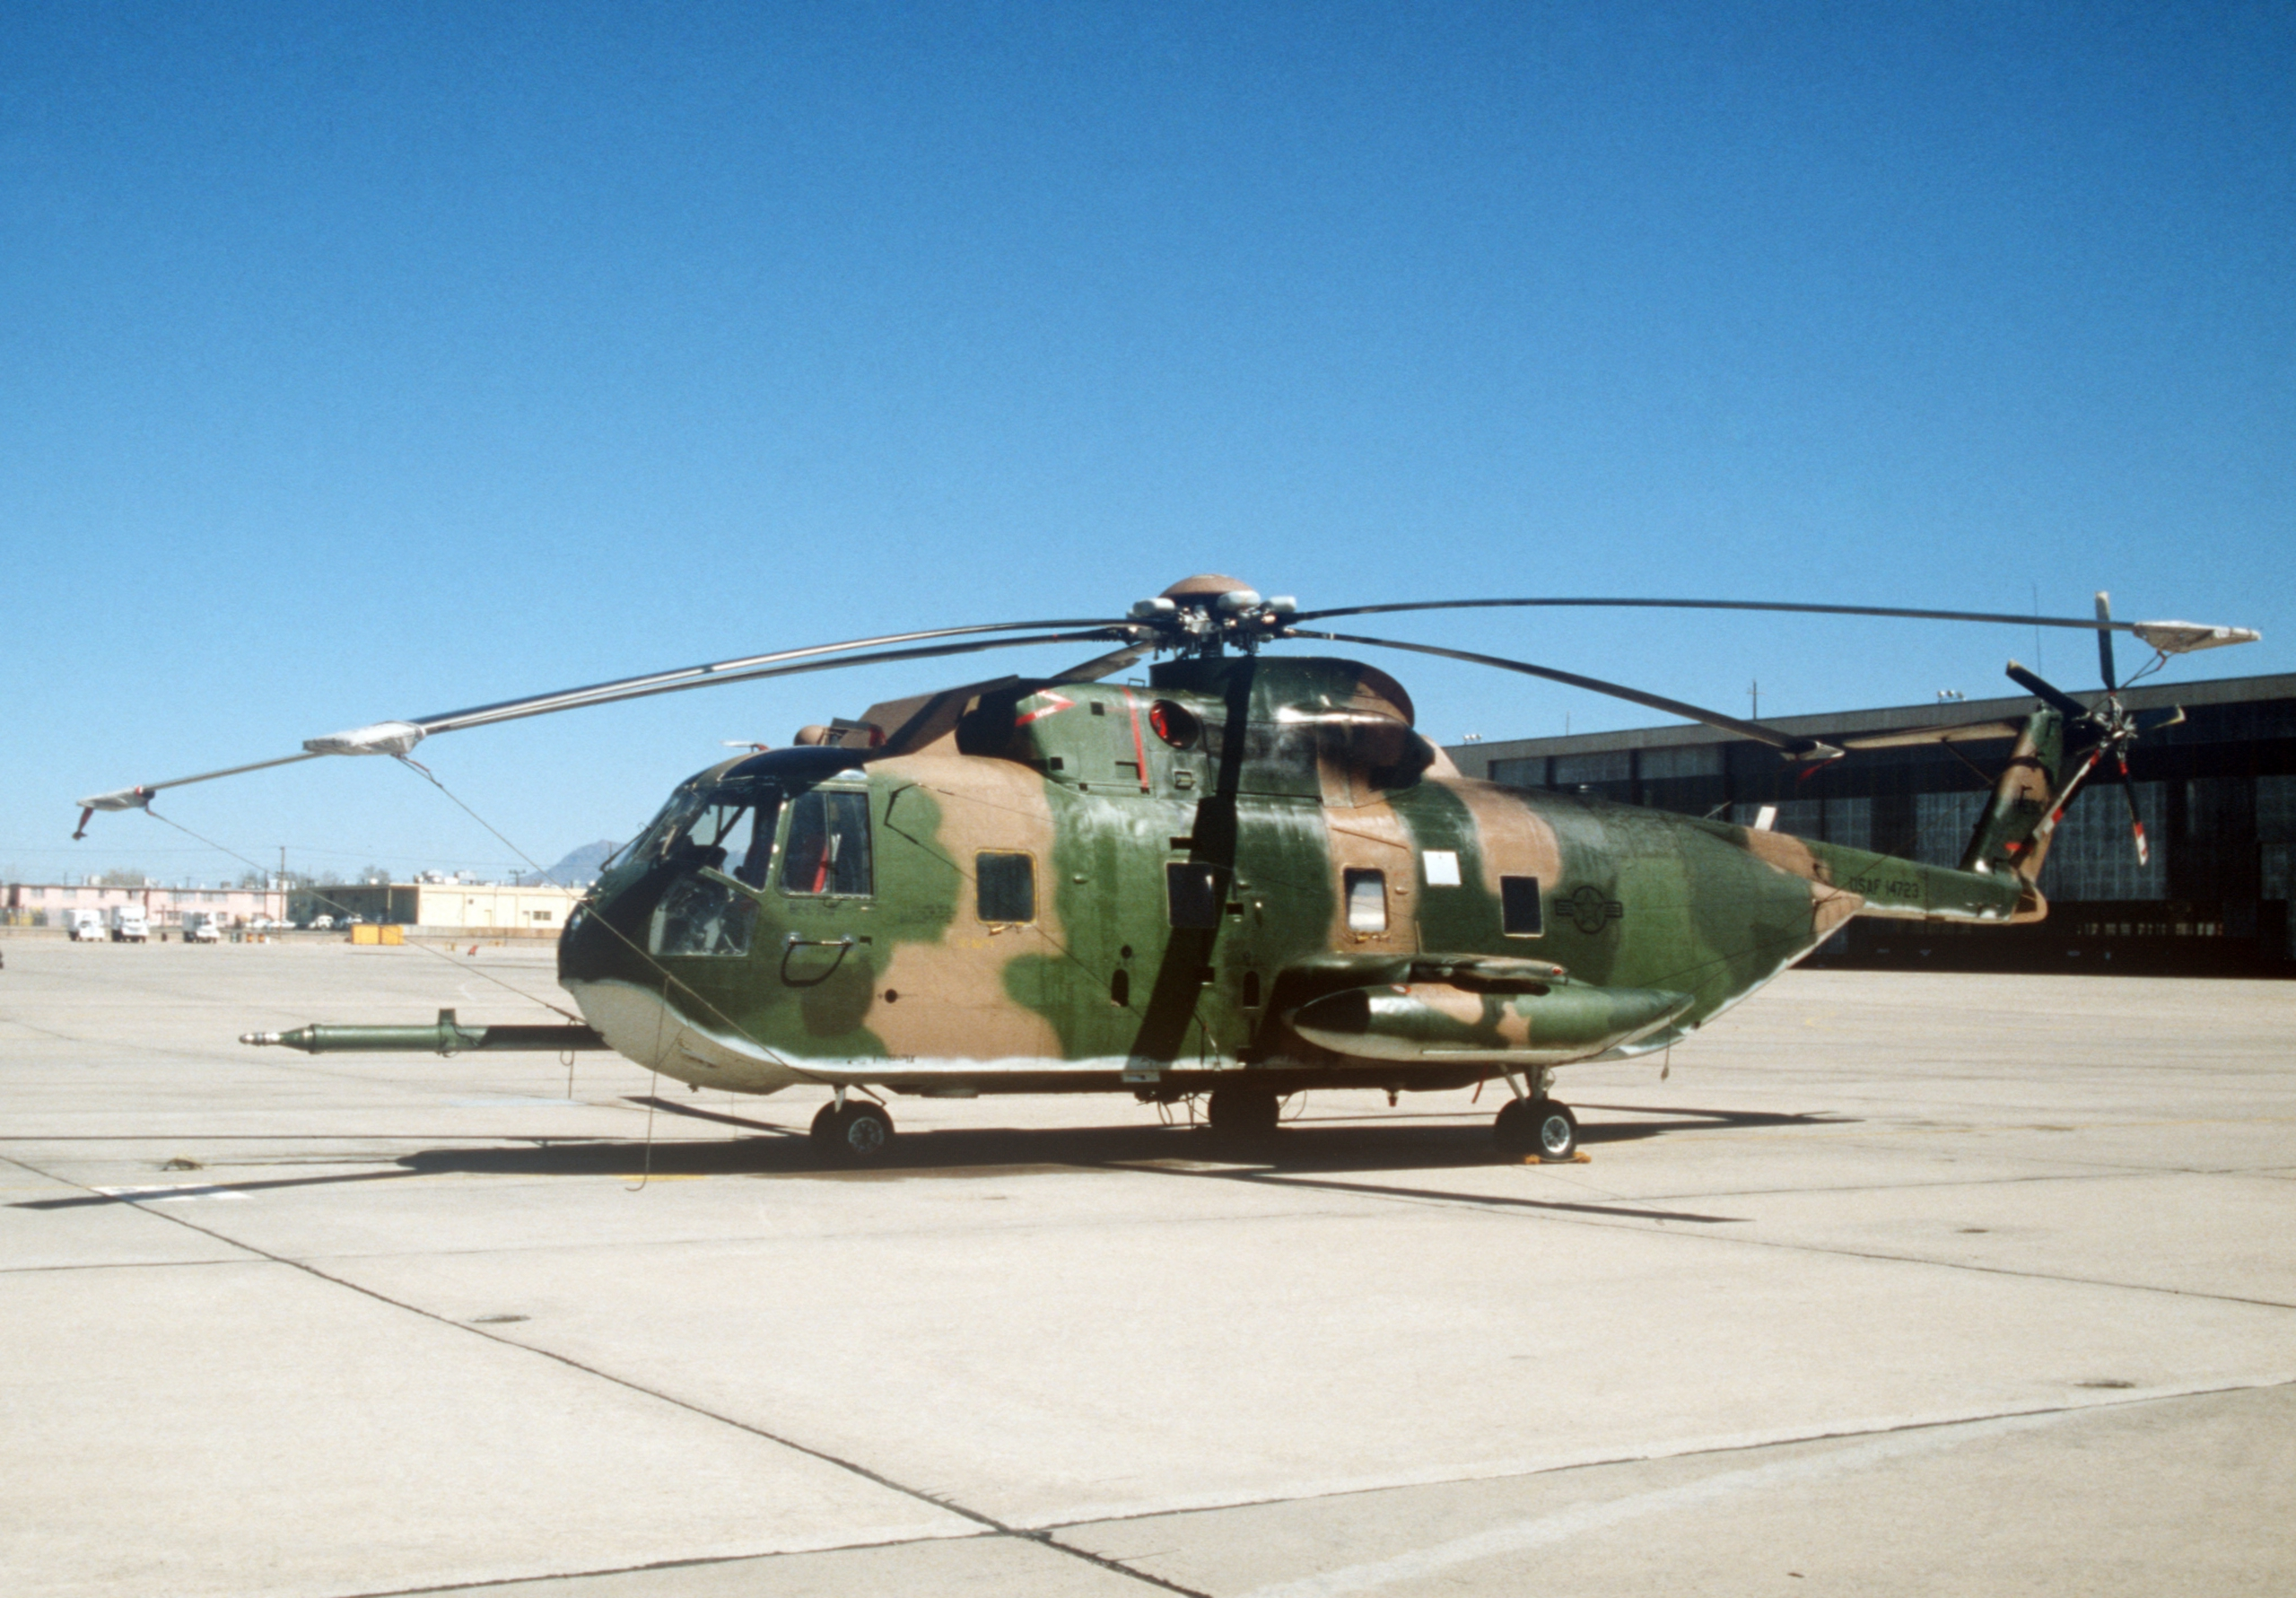 sikorsky hh3 helicopter with File Hh 3e At Kirtland Afb 1980 on Jolly Green Giant in addition modity Jurisdiction For Mi 17 Helicopter also Detail besides Id photos ch3jollygreengiant also Hh3e.